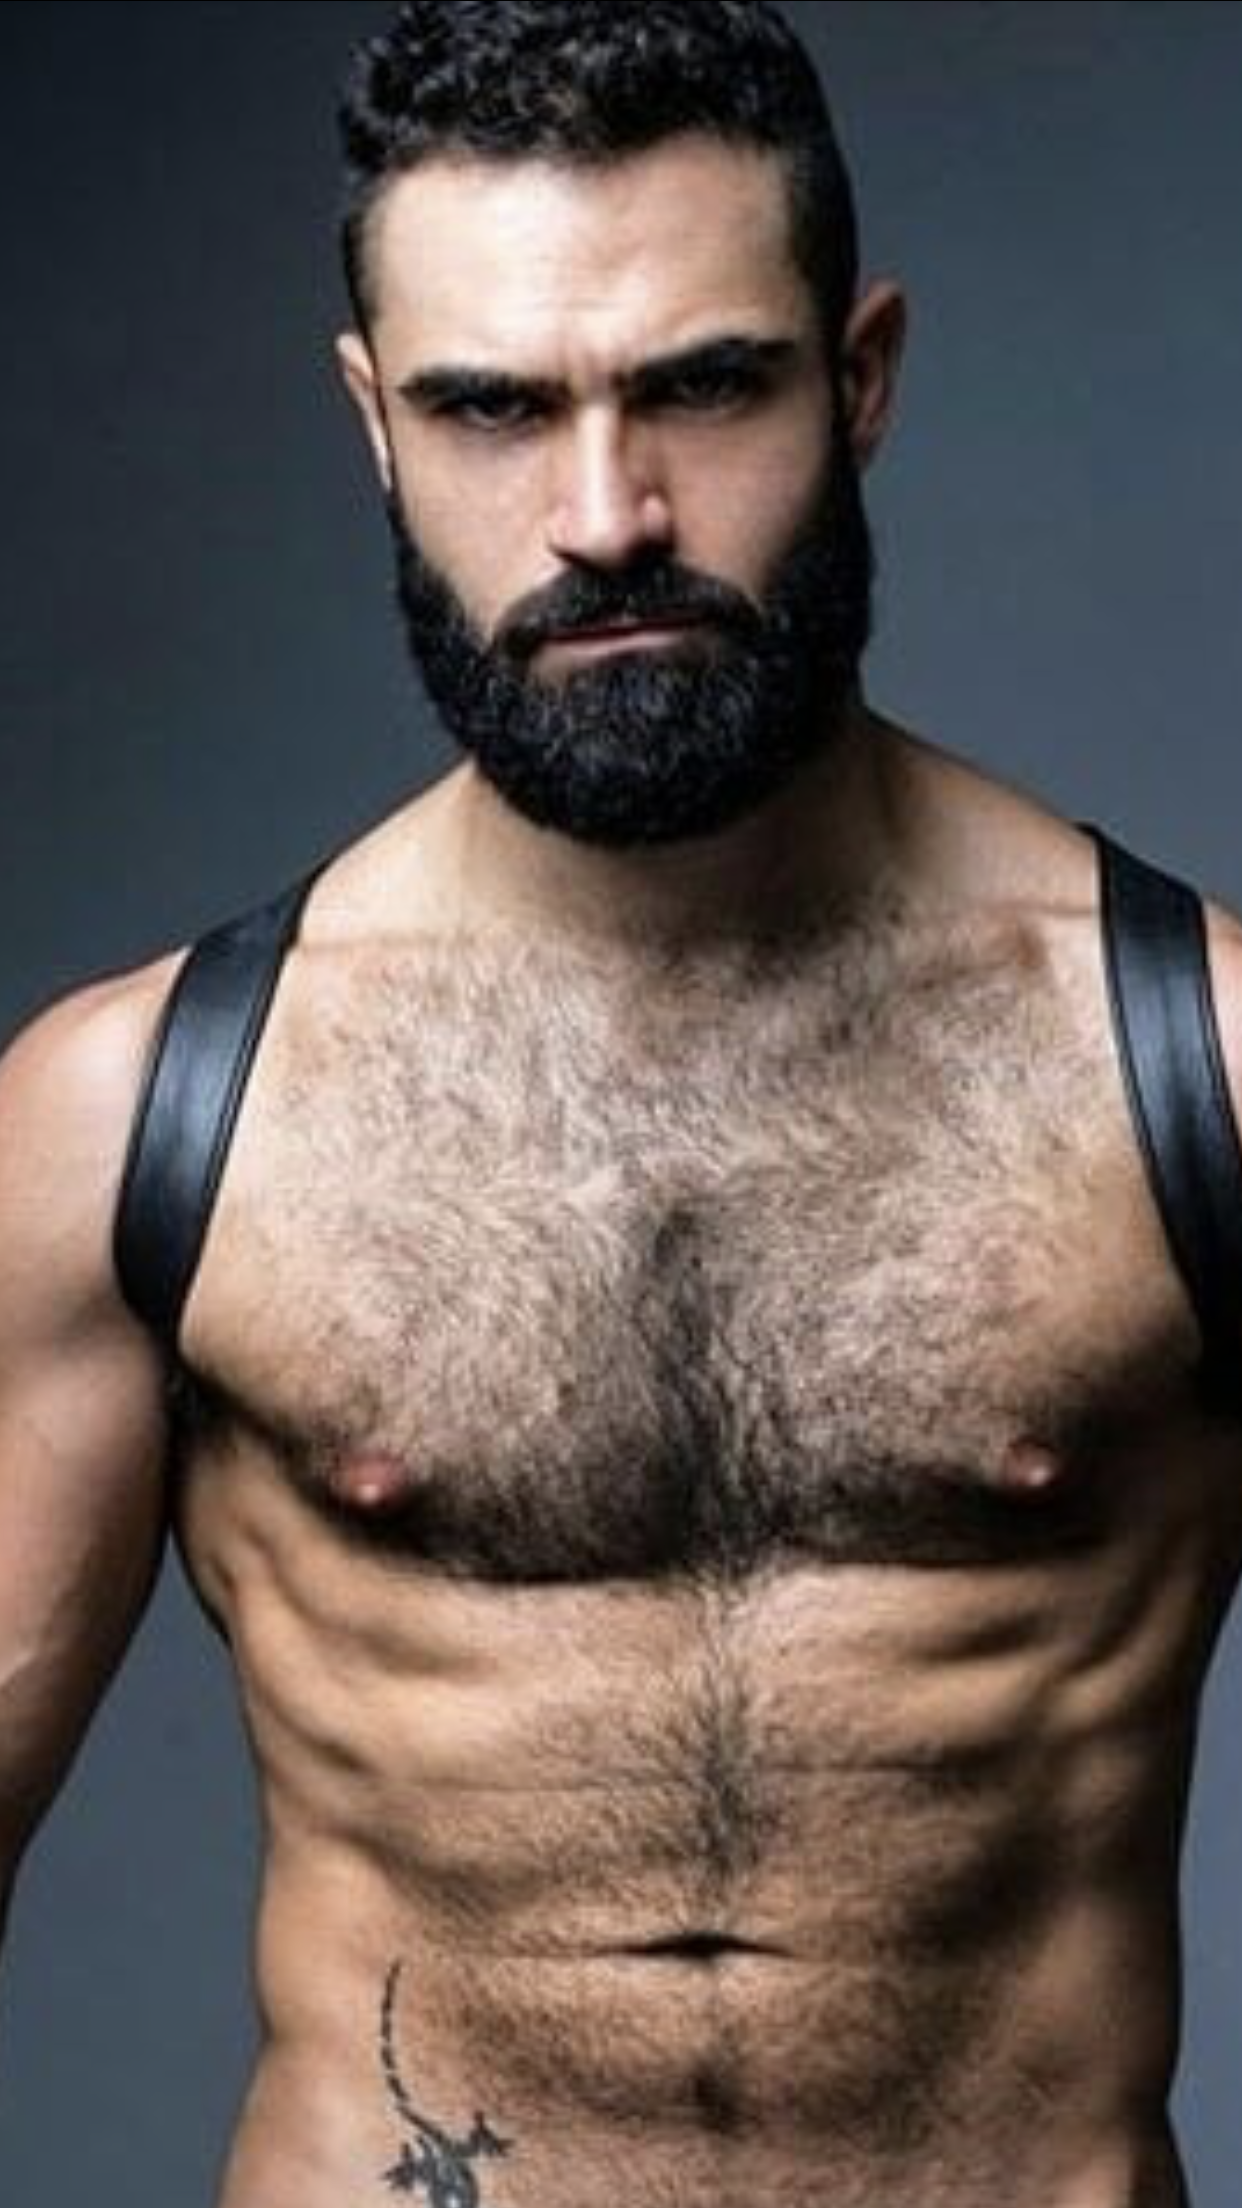 Hairy man images